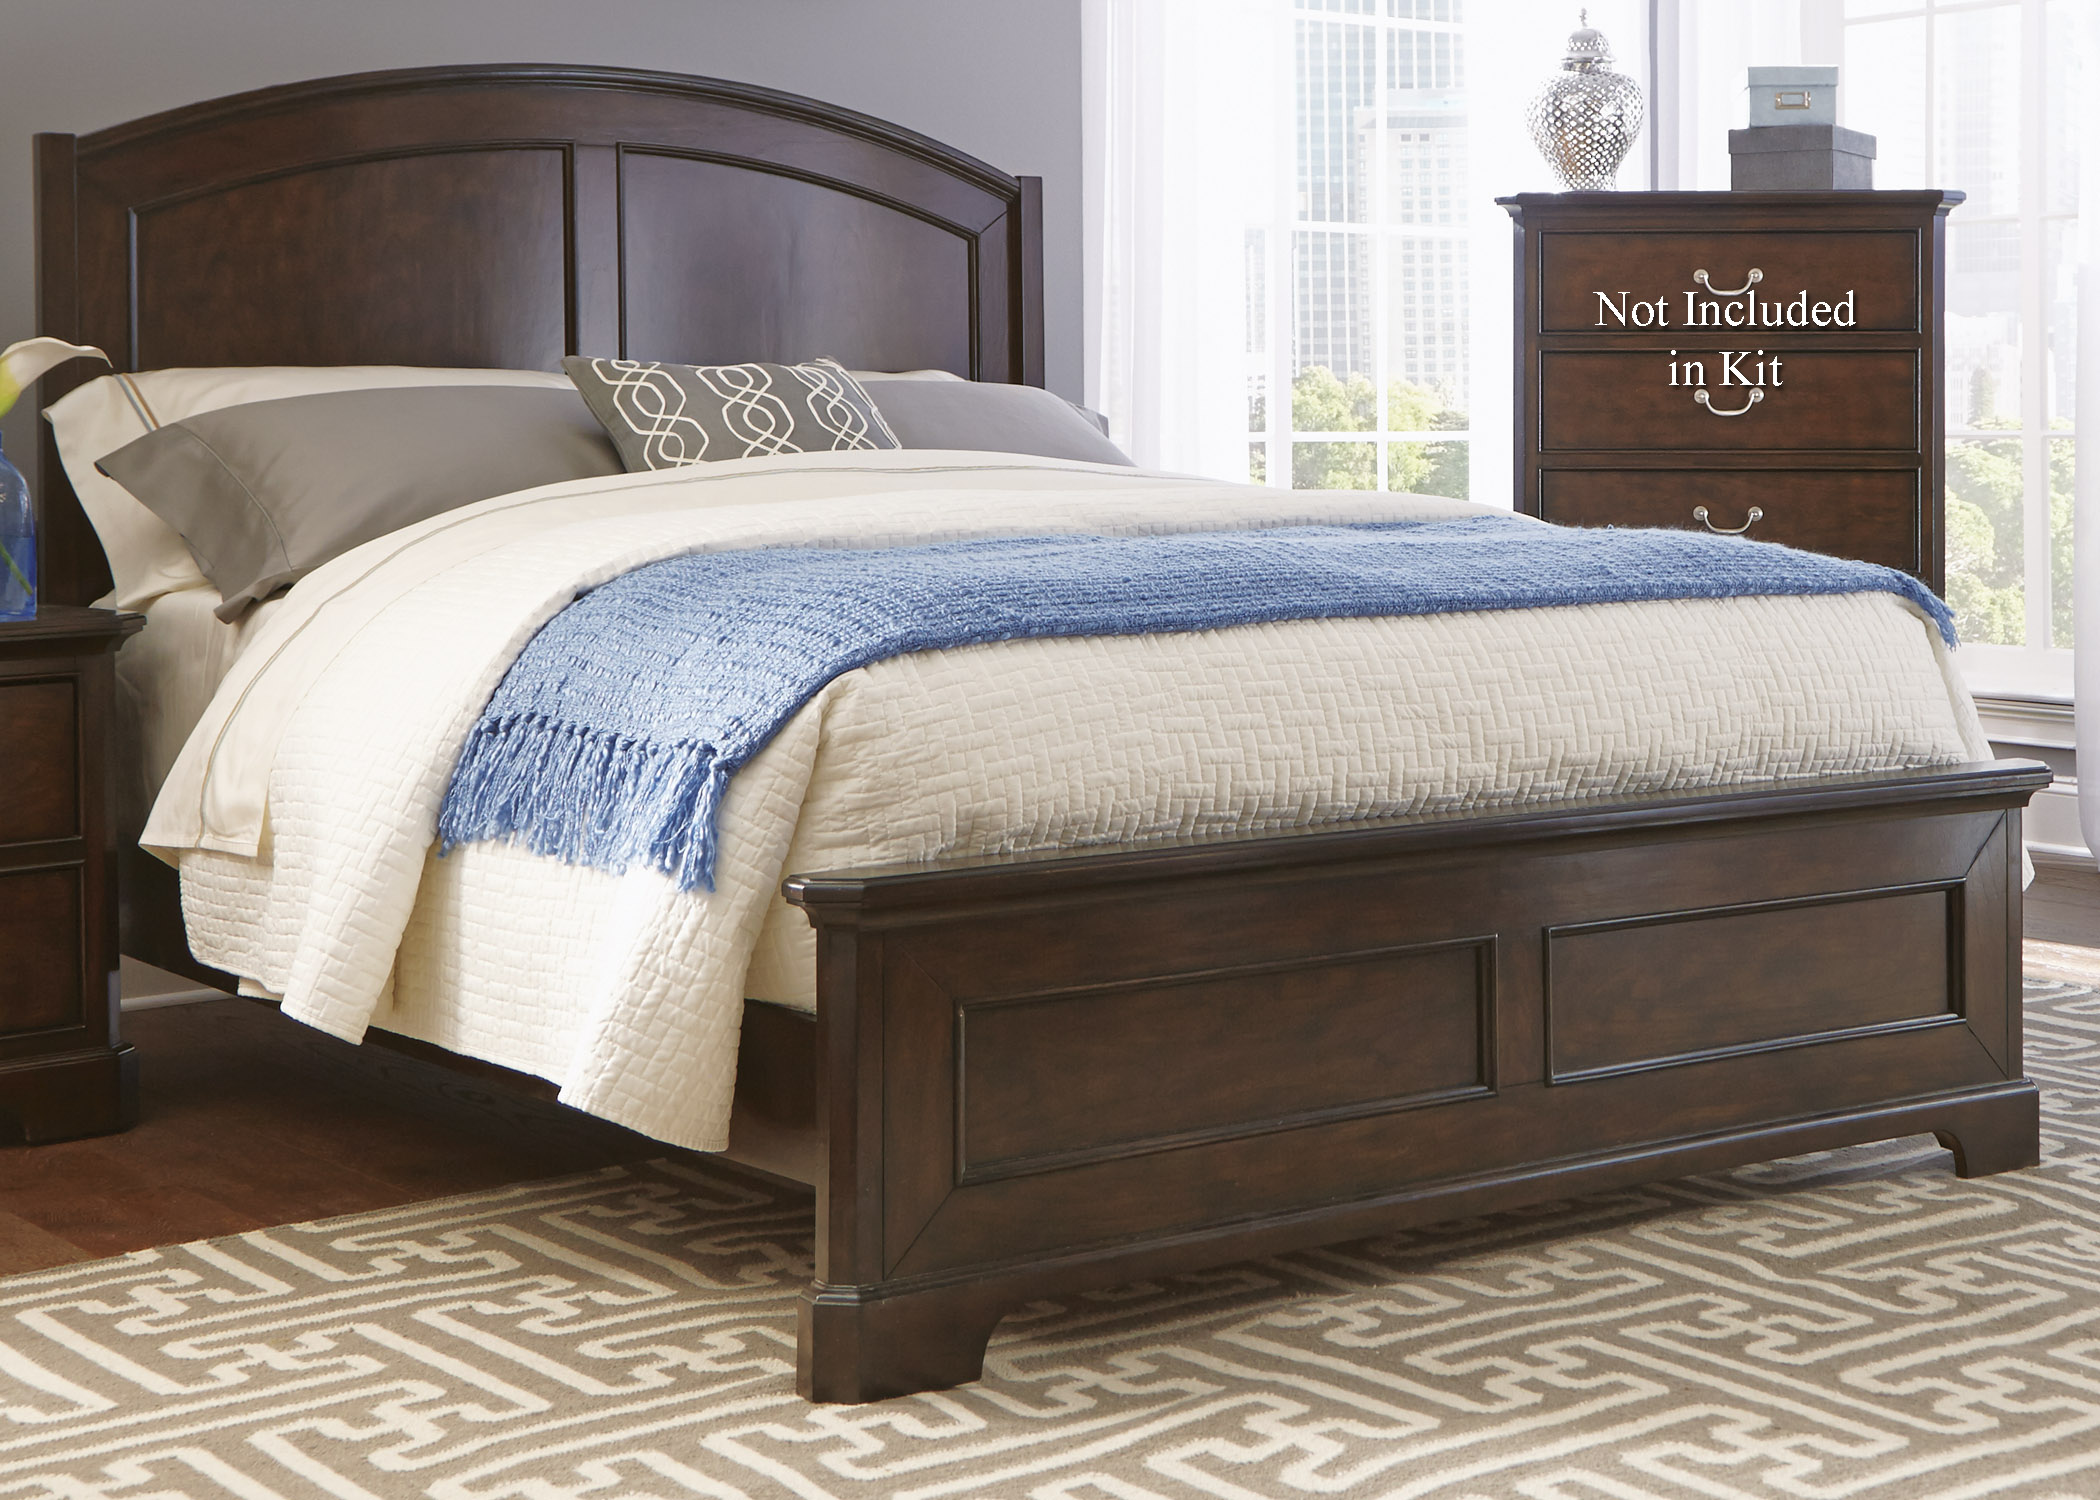 Liberty Furniture Avington King Panel Bed  - Item Number: 172-BR-KPB